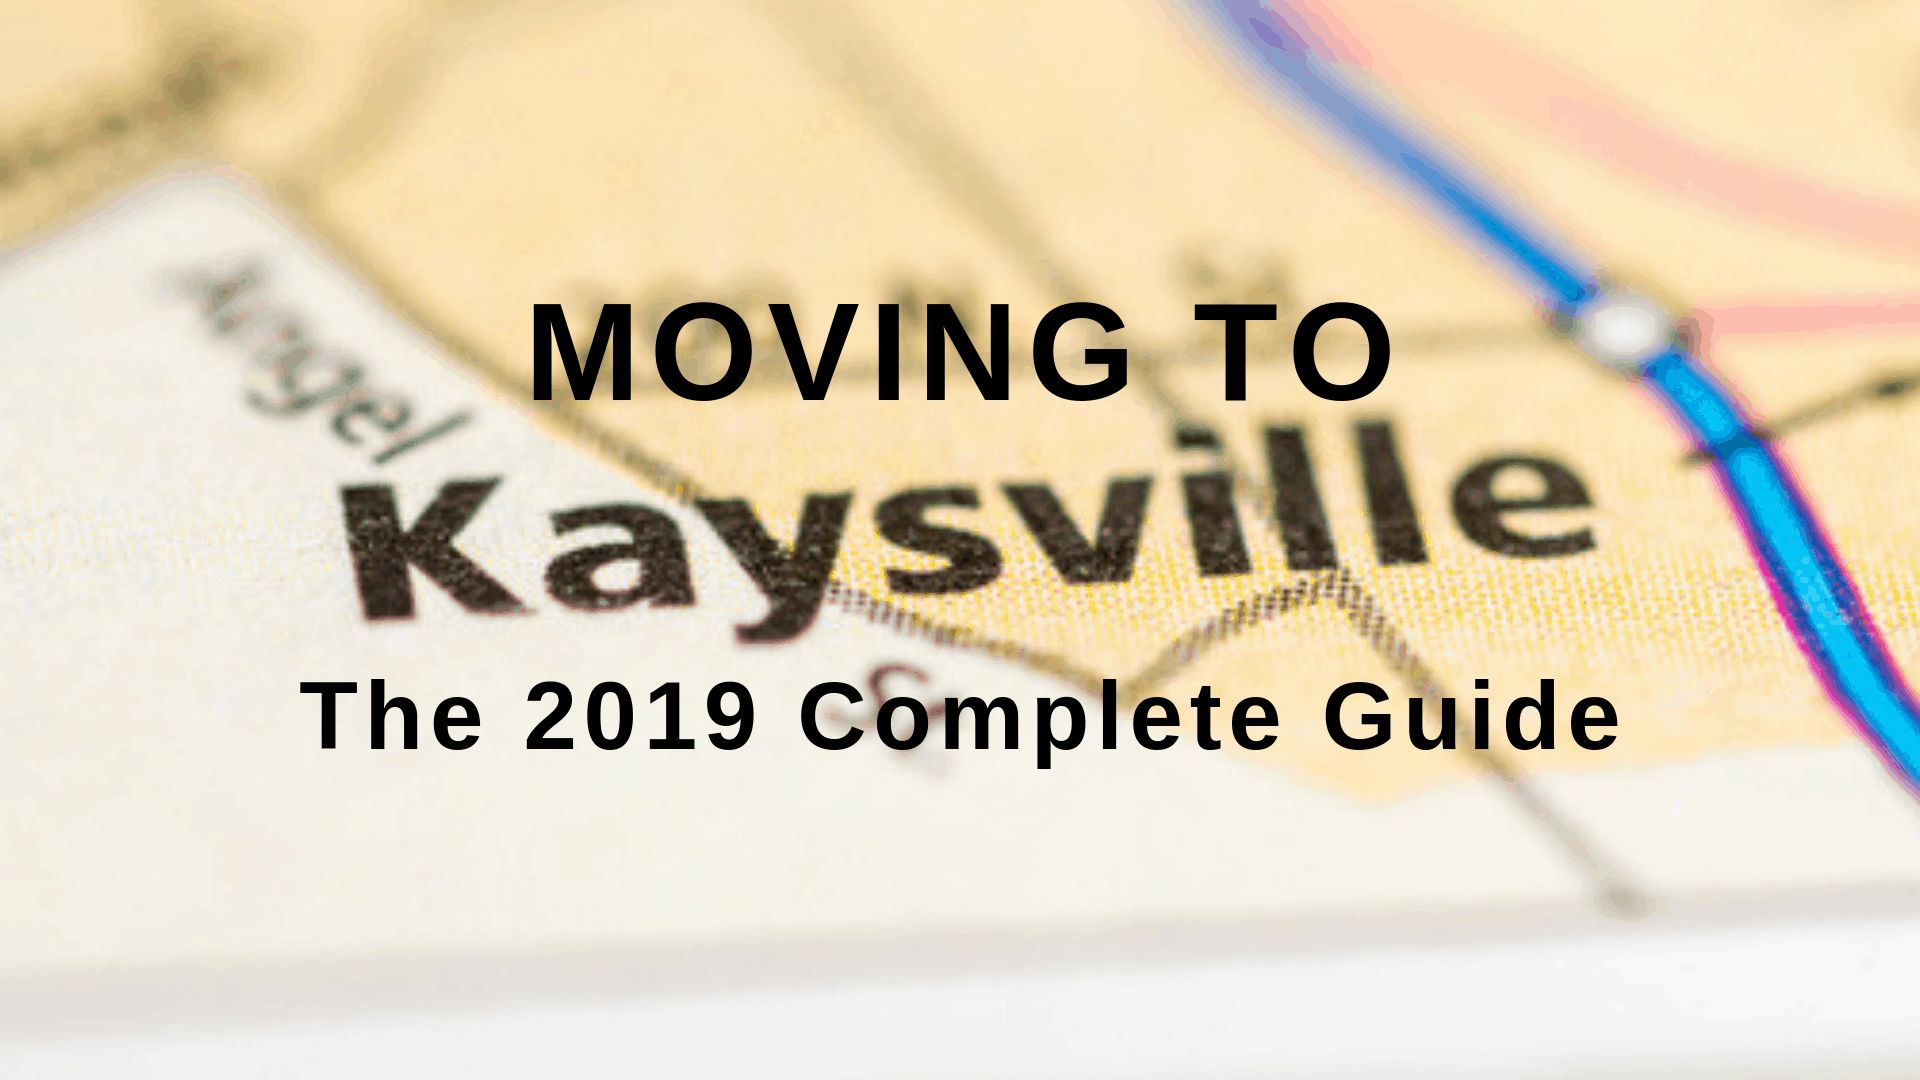 Moving to Kaysville